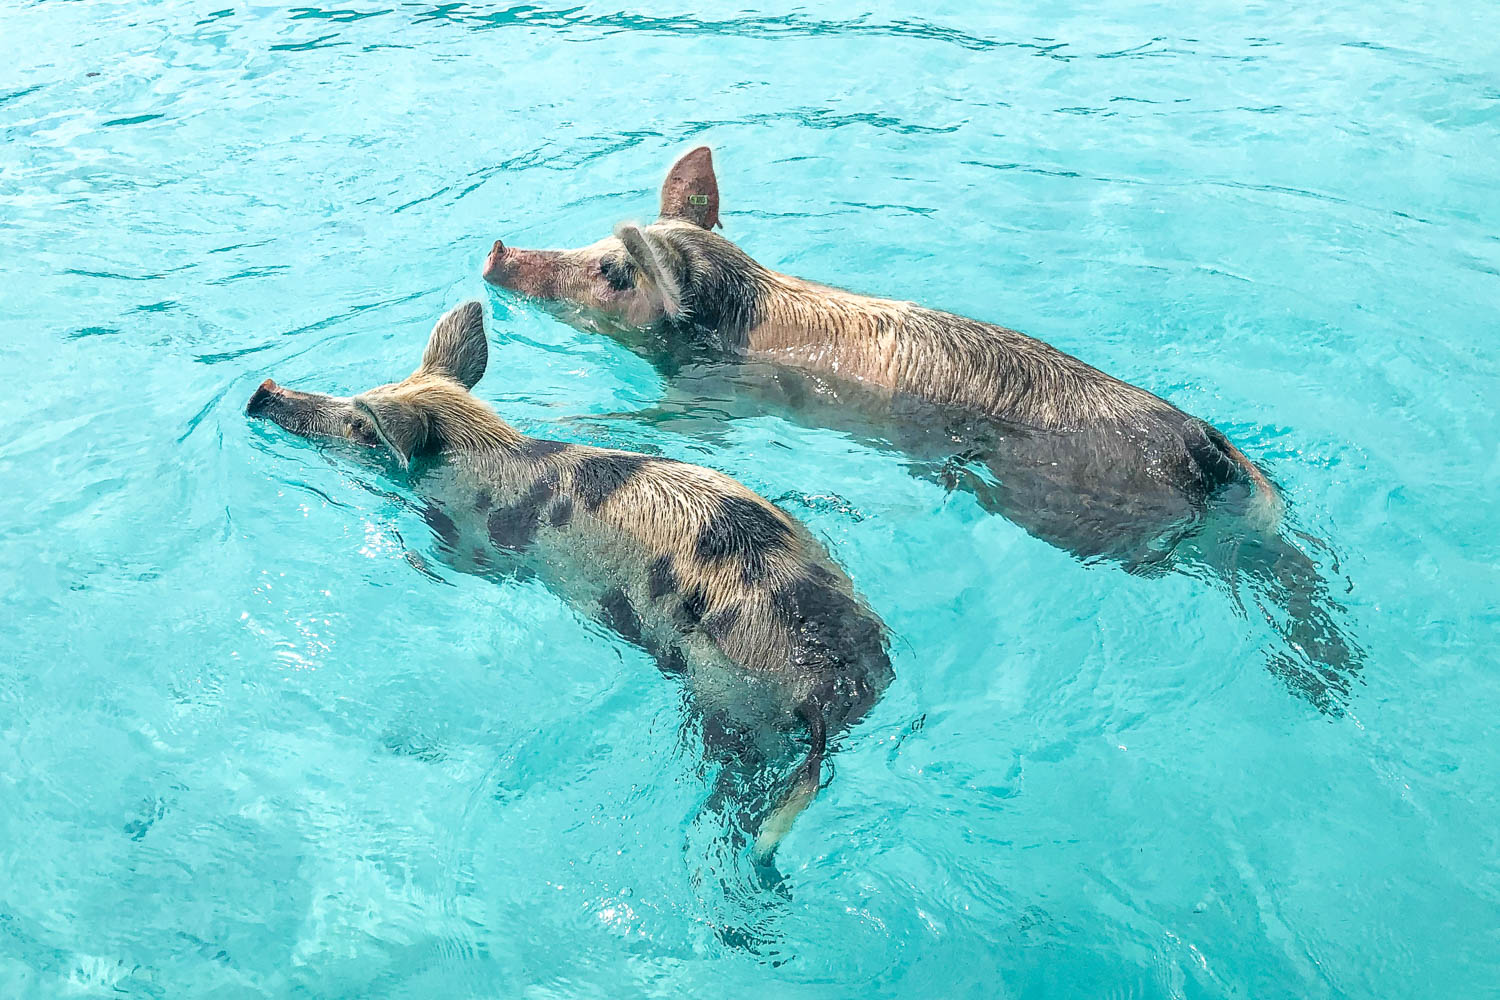 The swimming pigs are the crown jewel of a day trip to Bahamas from Fort Lauderdale. Fort Lauderdale Bahamas day trip plans offer a lot of excursions in one.